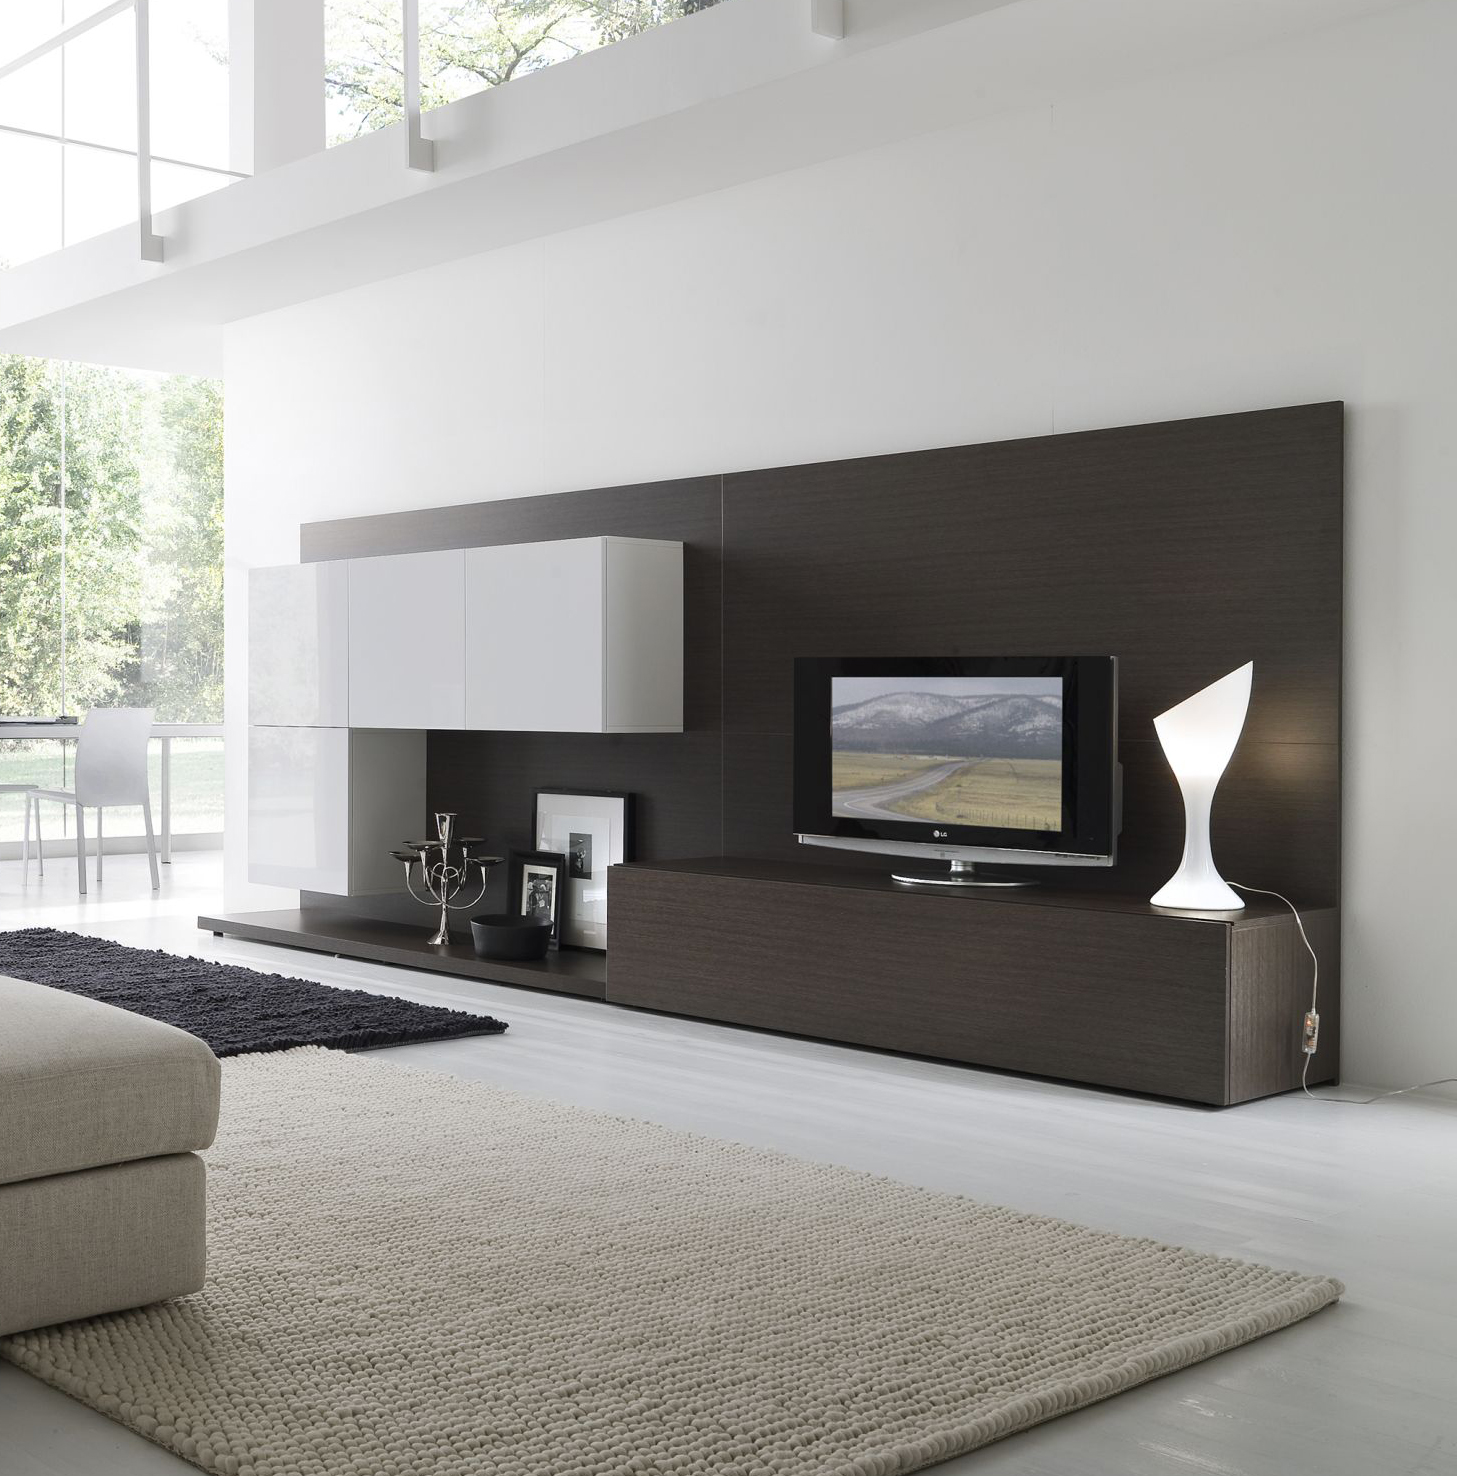 Minimalistic-Living-Room-Interior-design-and-furnishings1